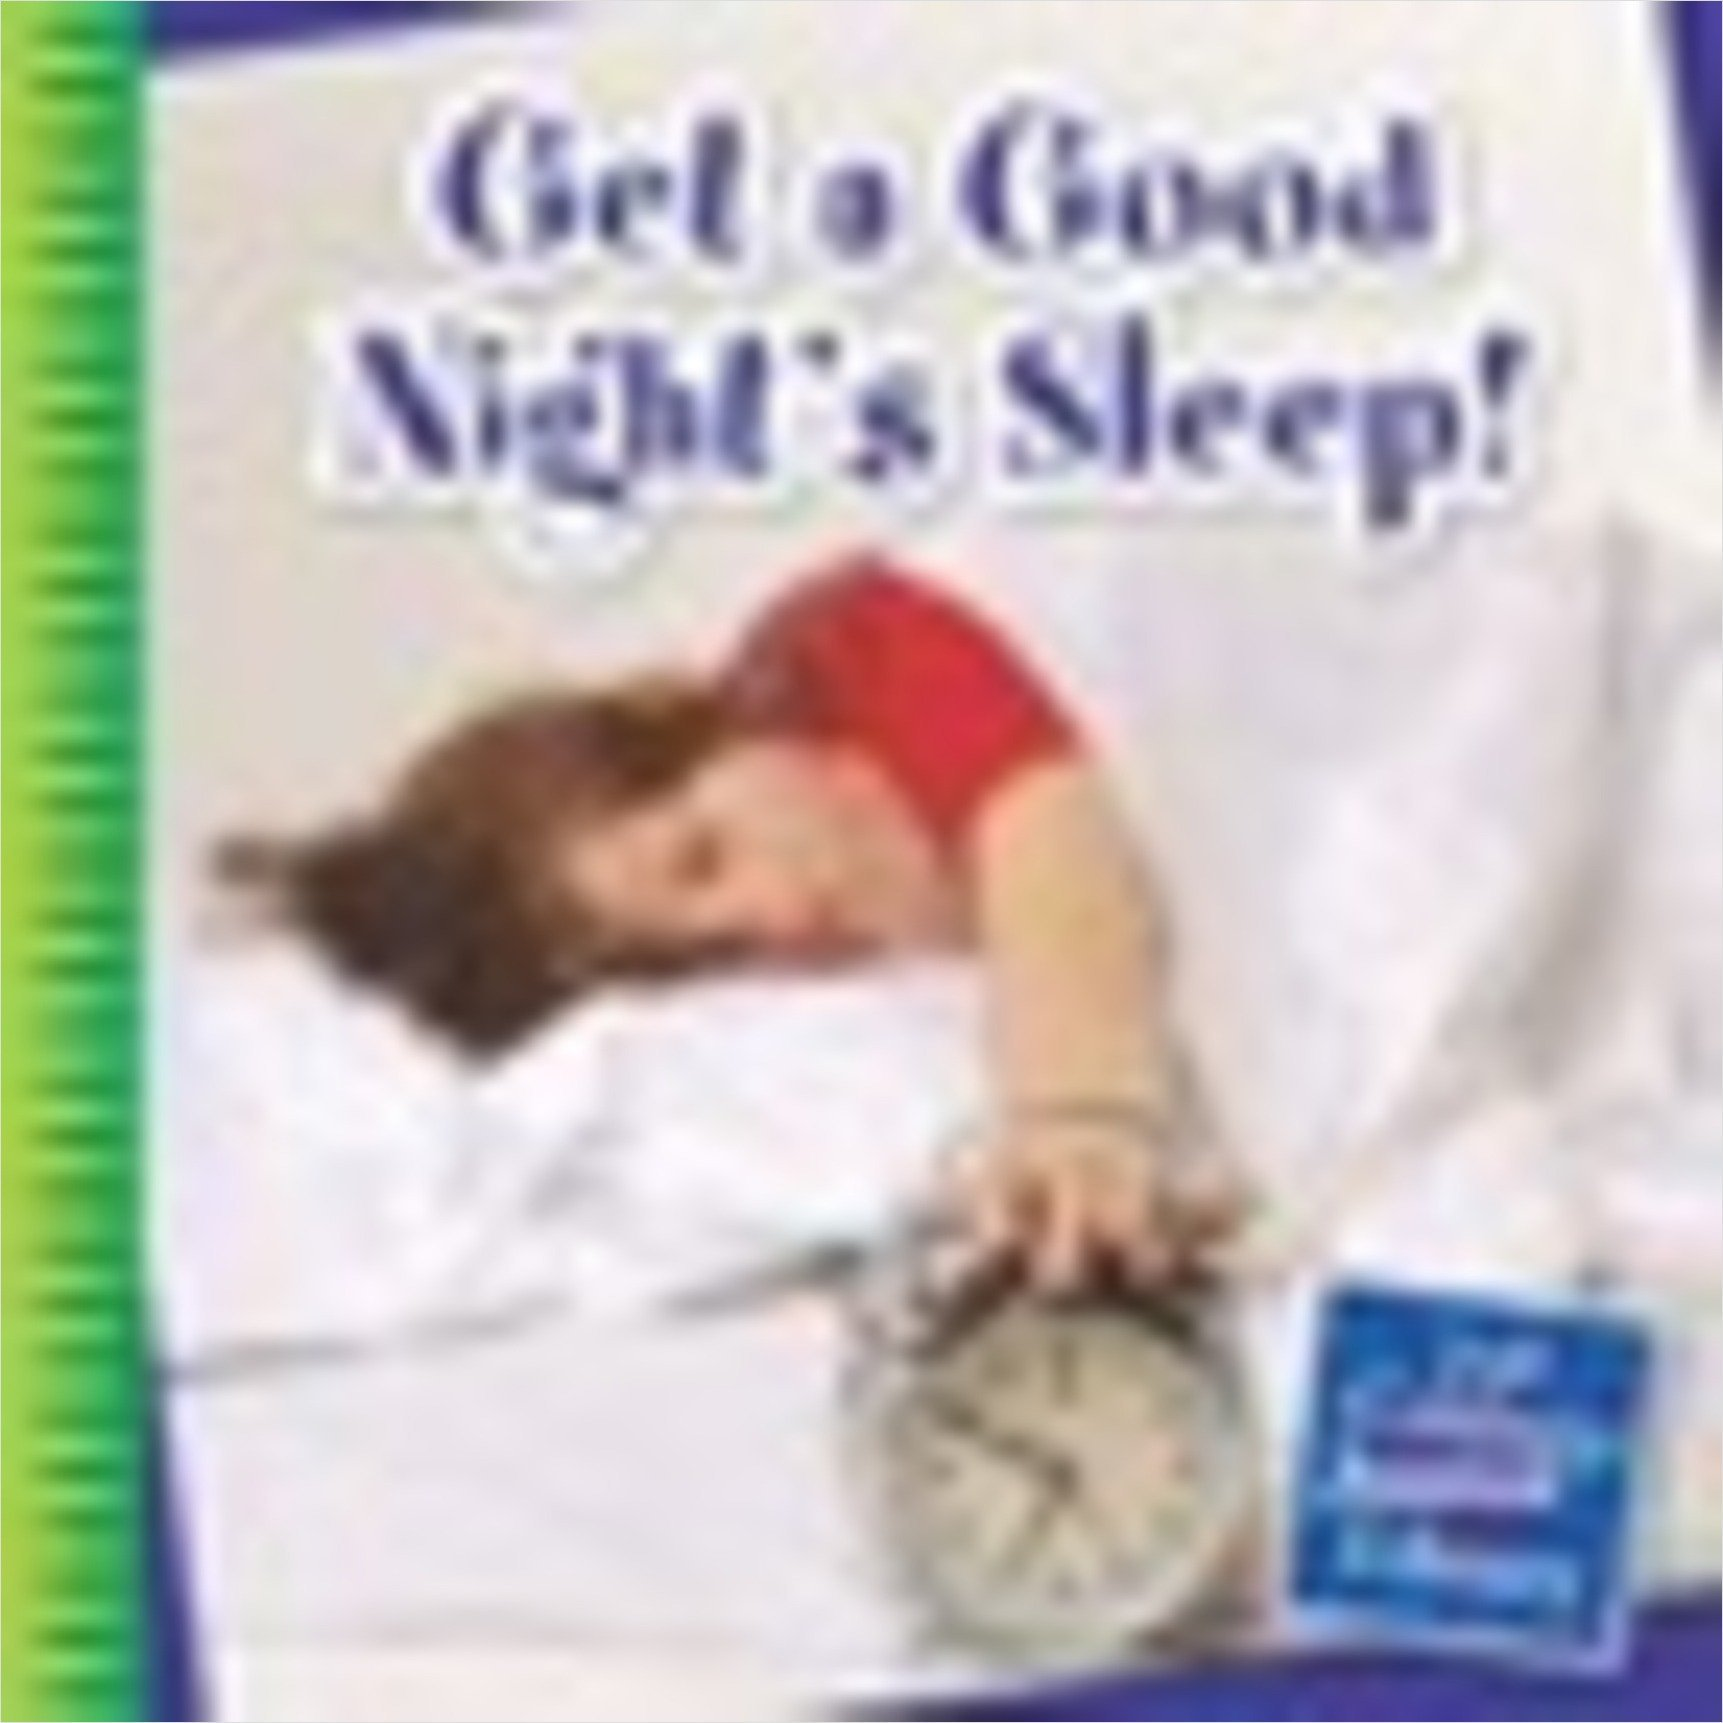 Cover: Get a Good Night's Sleep!